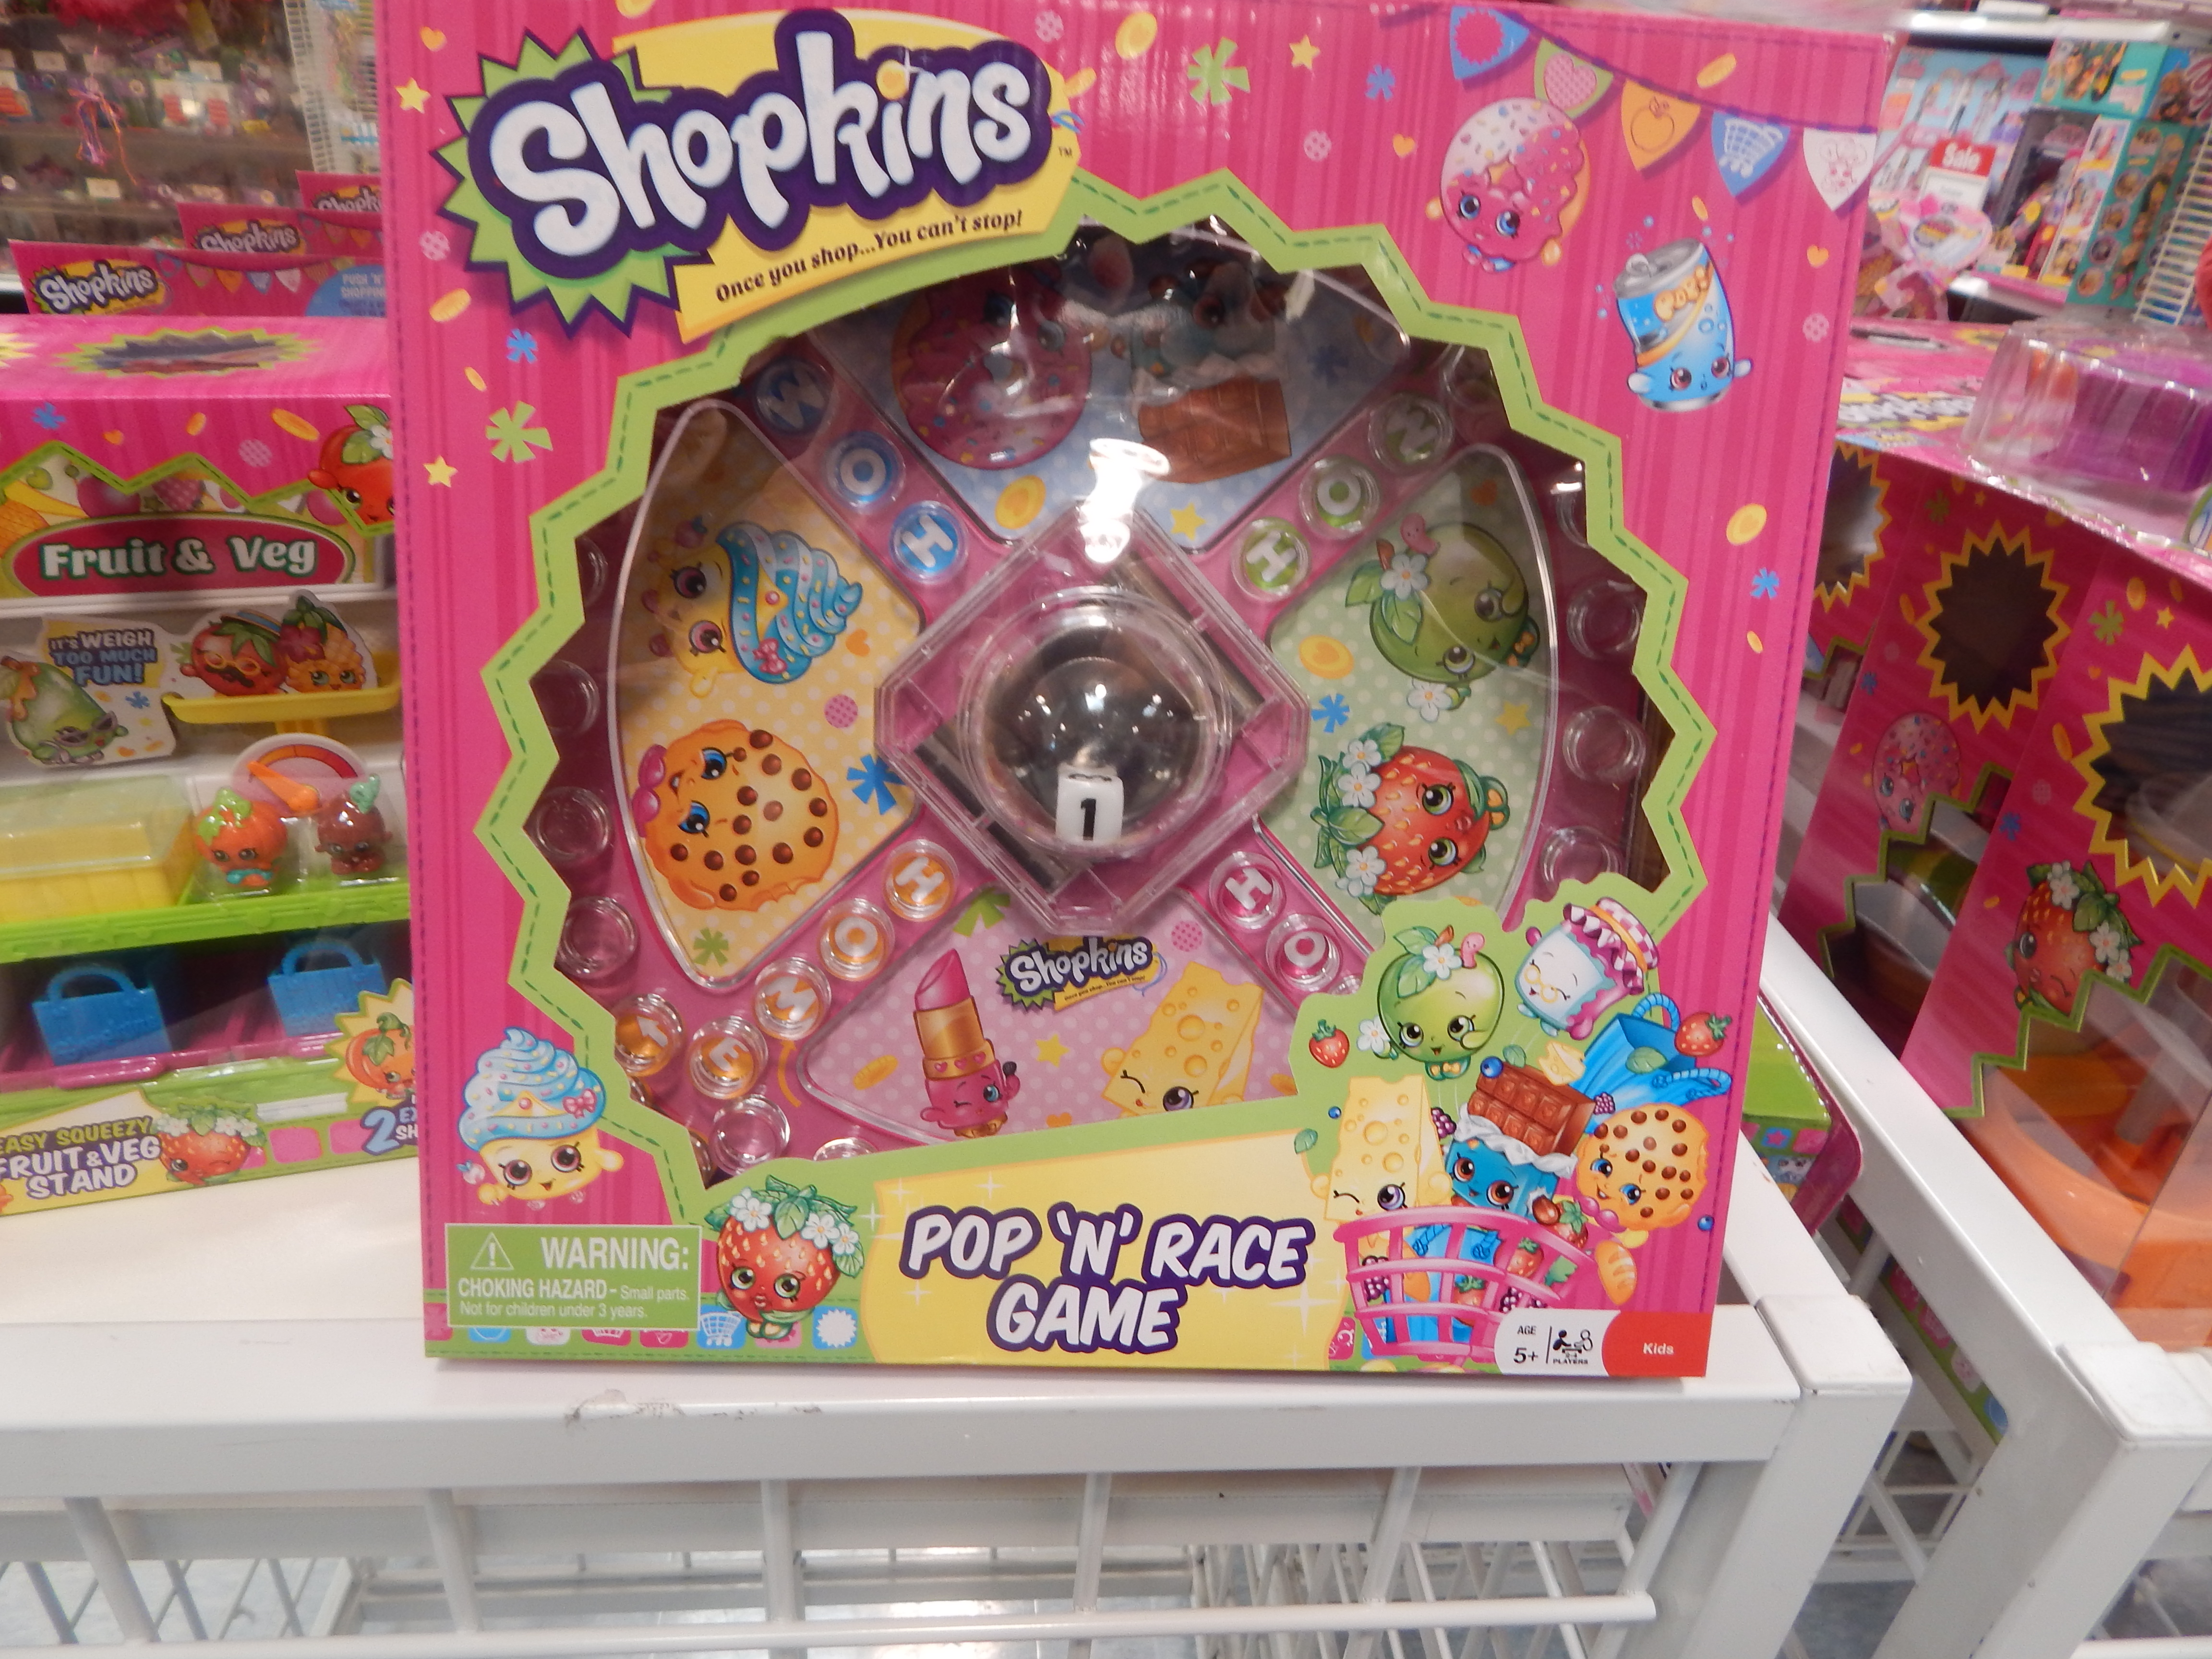 shopkins season 3 and more no time mommy shopkins season 3 and more no time mommy